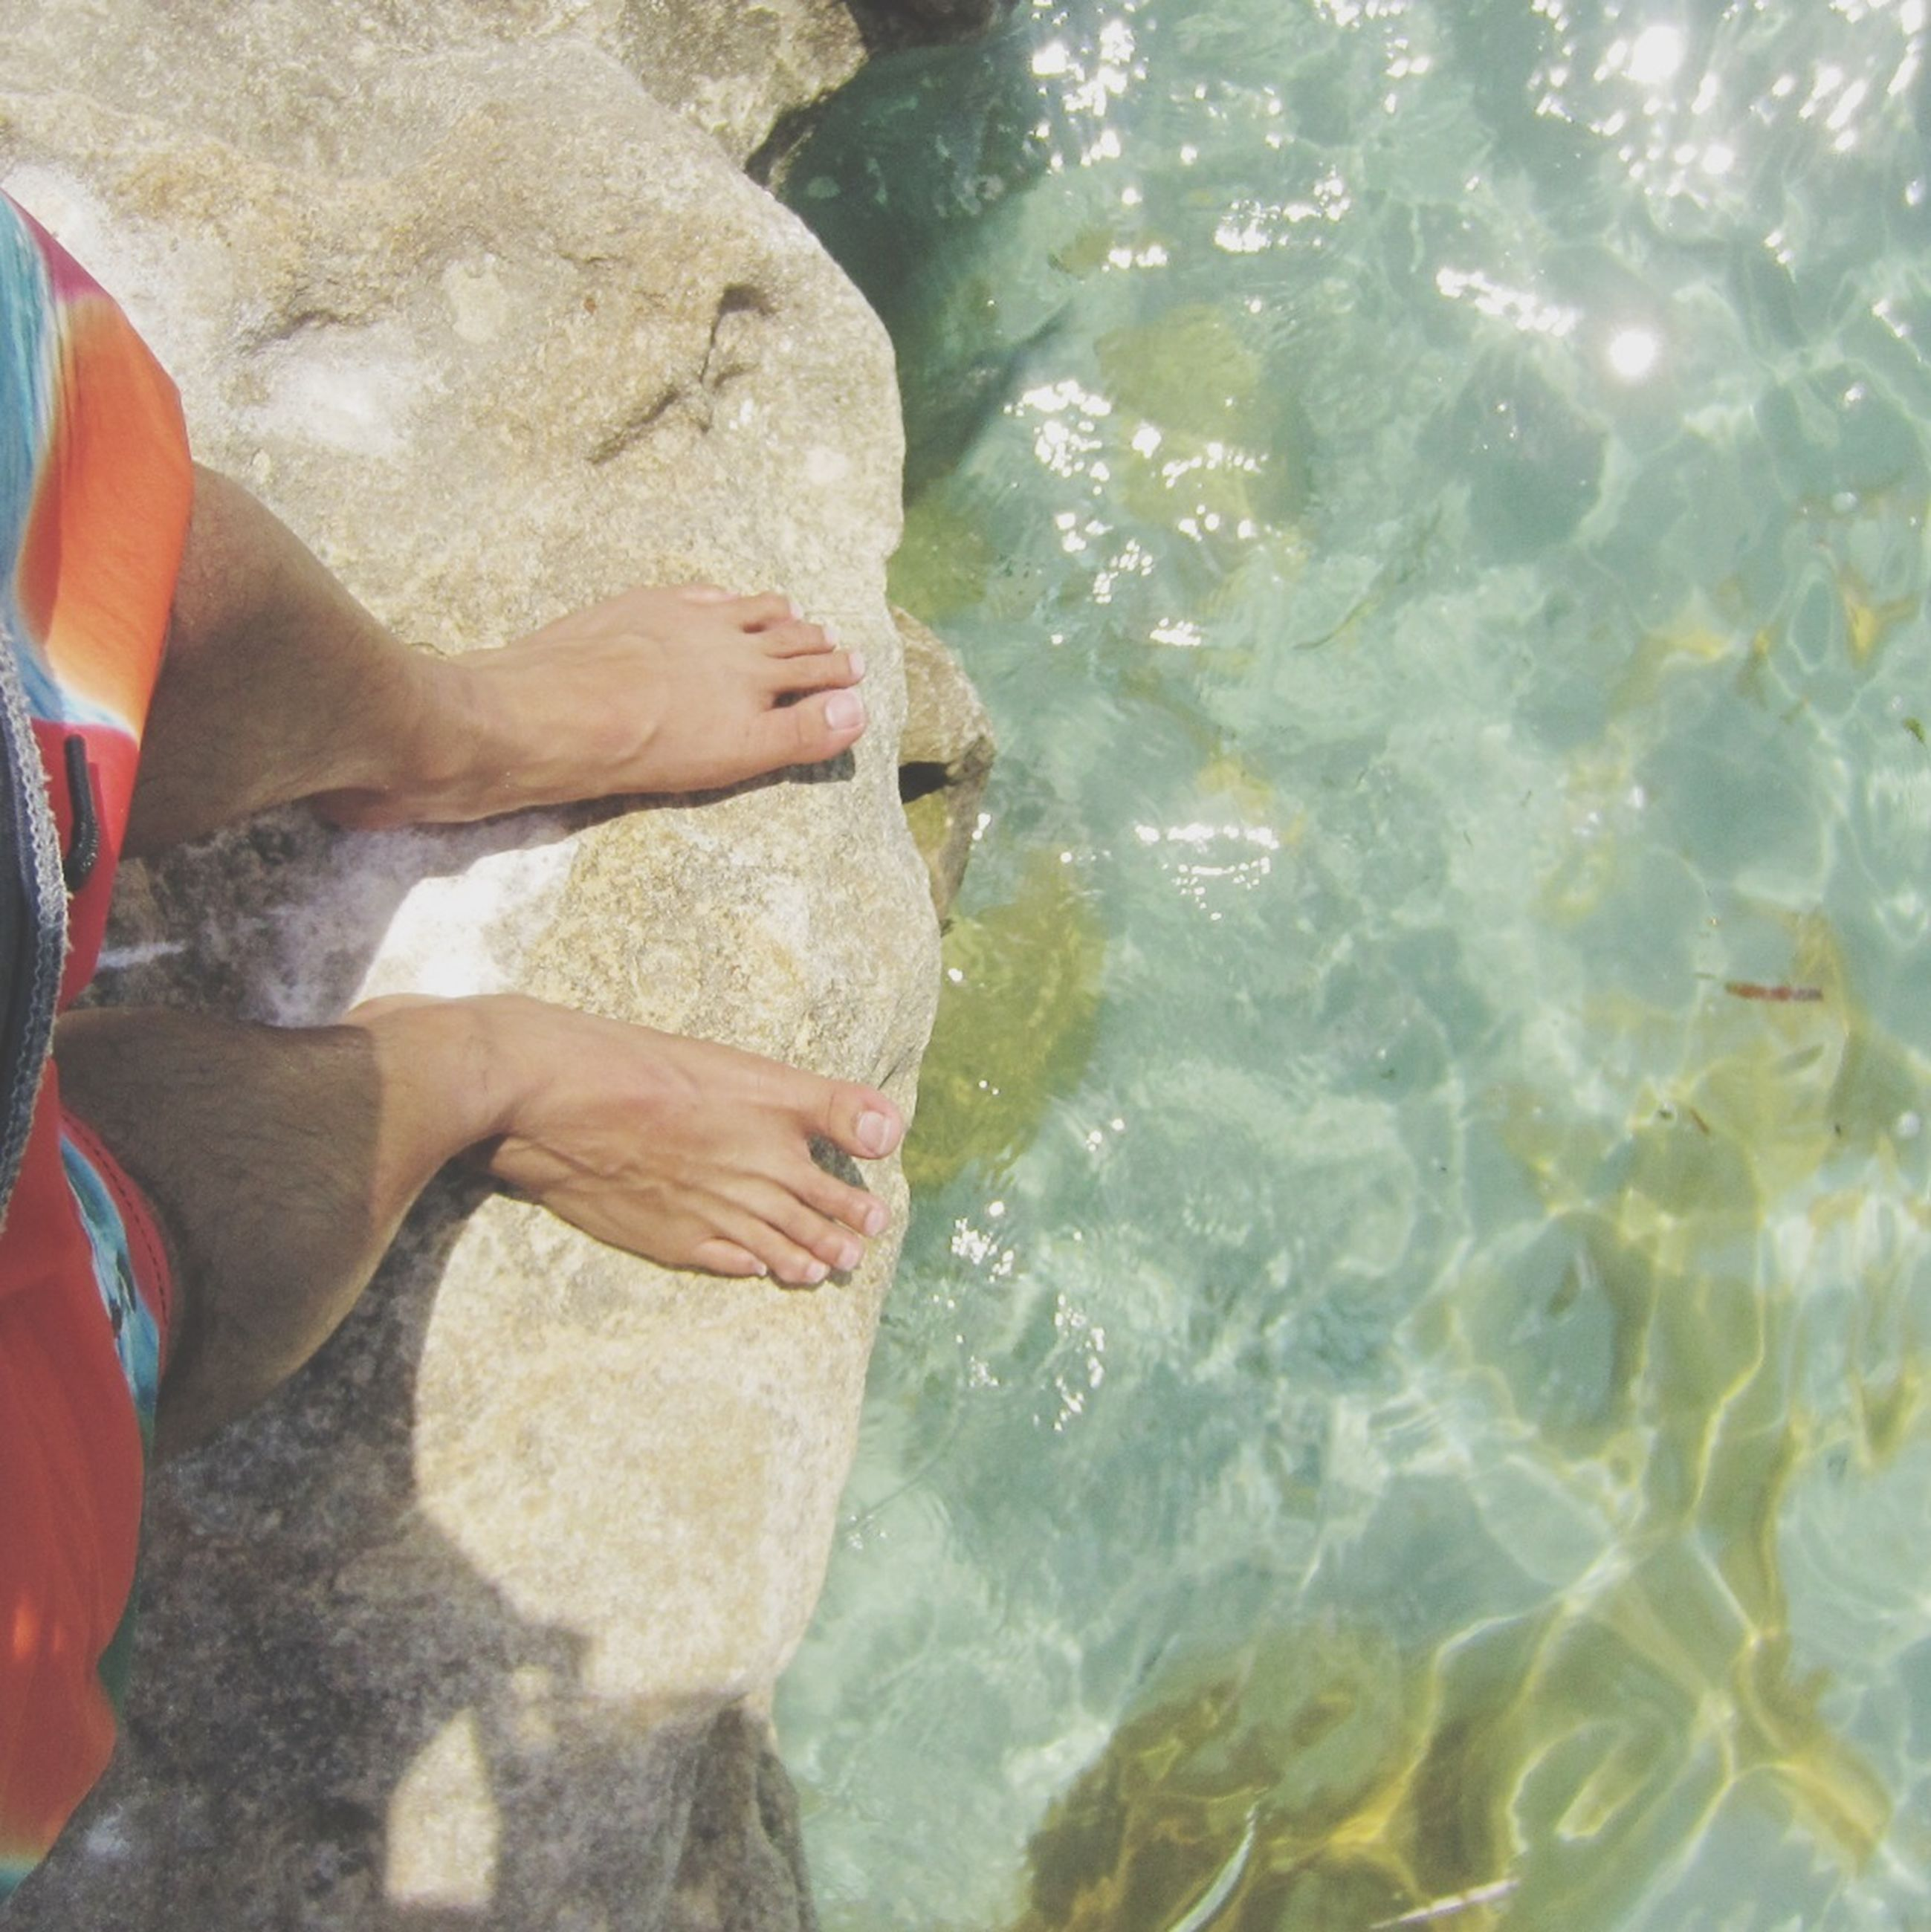 water, lifestyles, leisure activity, high angle view, swimming, low section, men, person, sunlight, vacations, sea, barefoot, day, outdoors, waterfront, rippled, relaxation